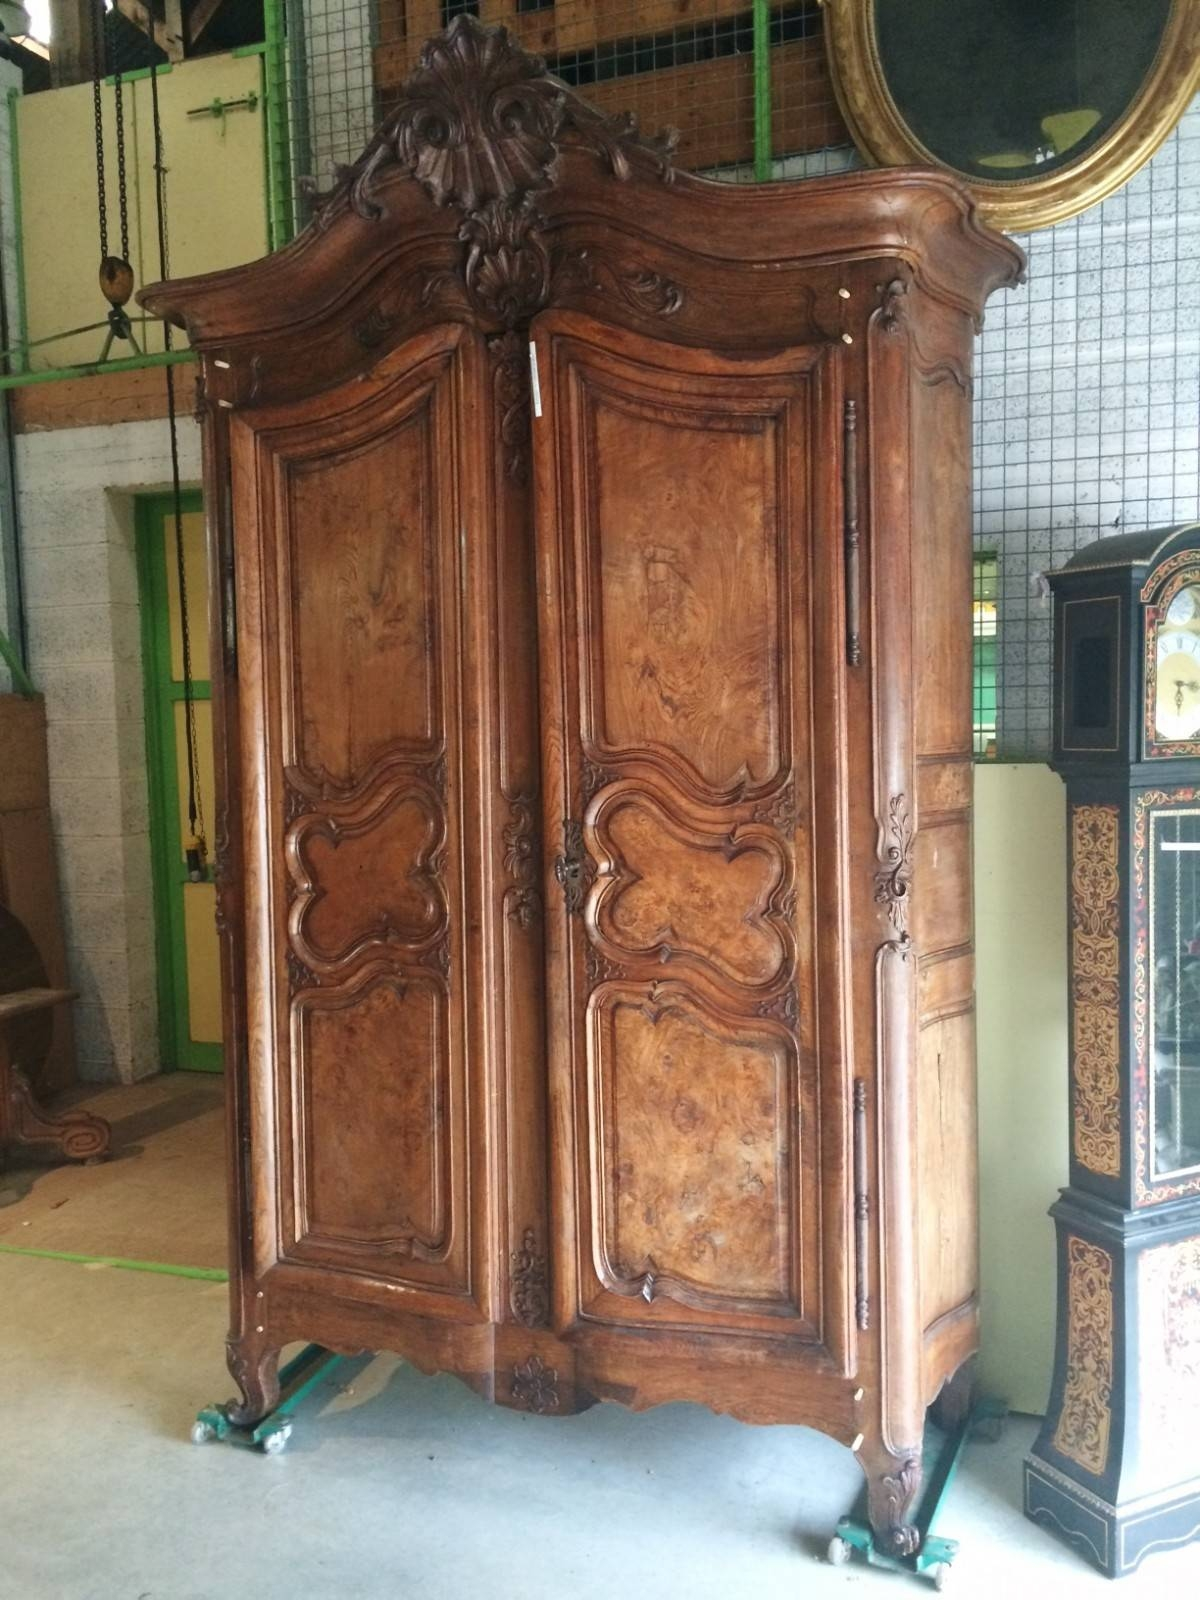 Antique French Wardrobe 18Th Century | Antic France with regard to Antique French Wardrobes (Image 4 of 15)